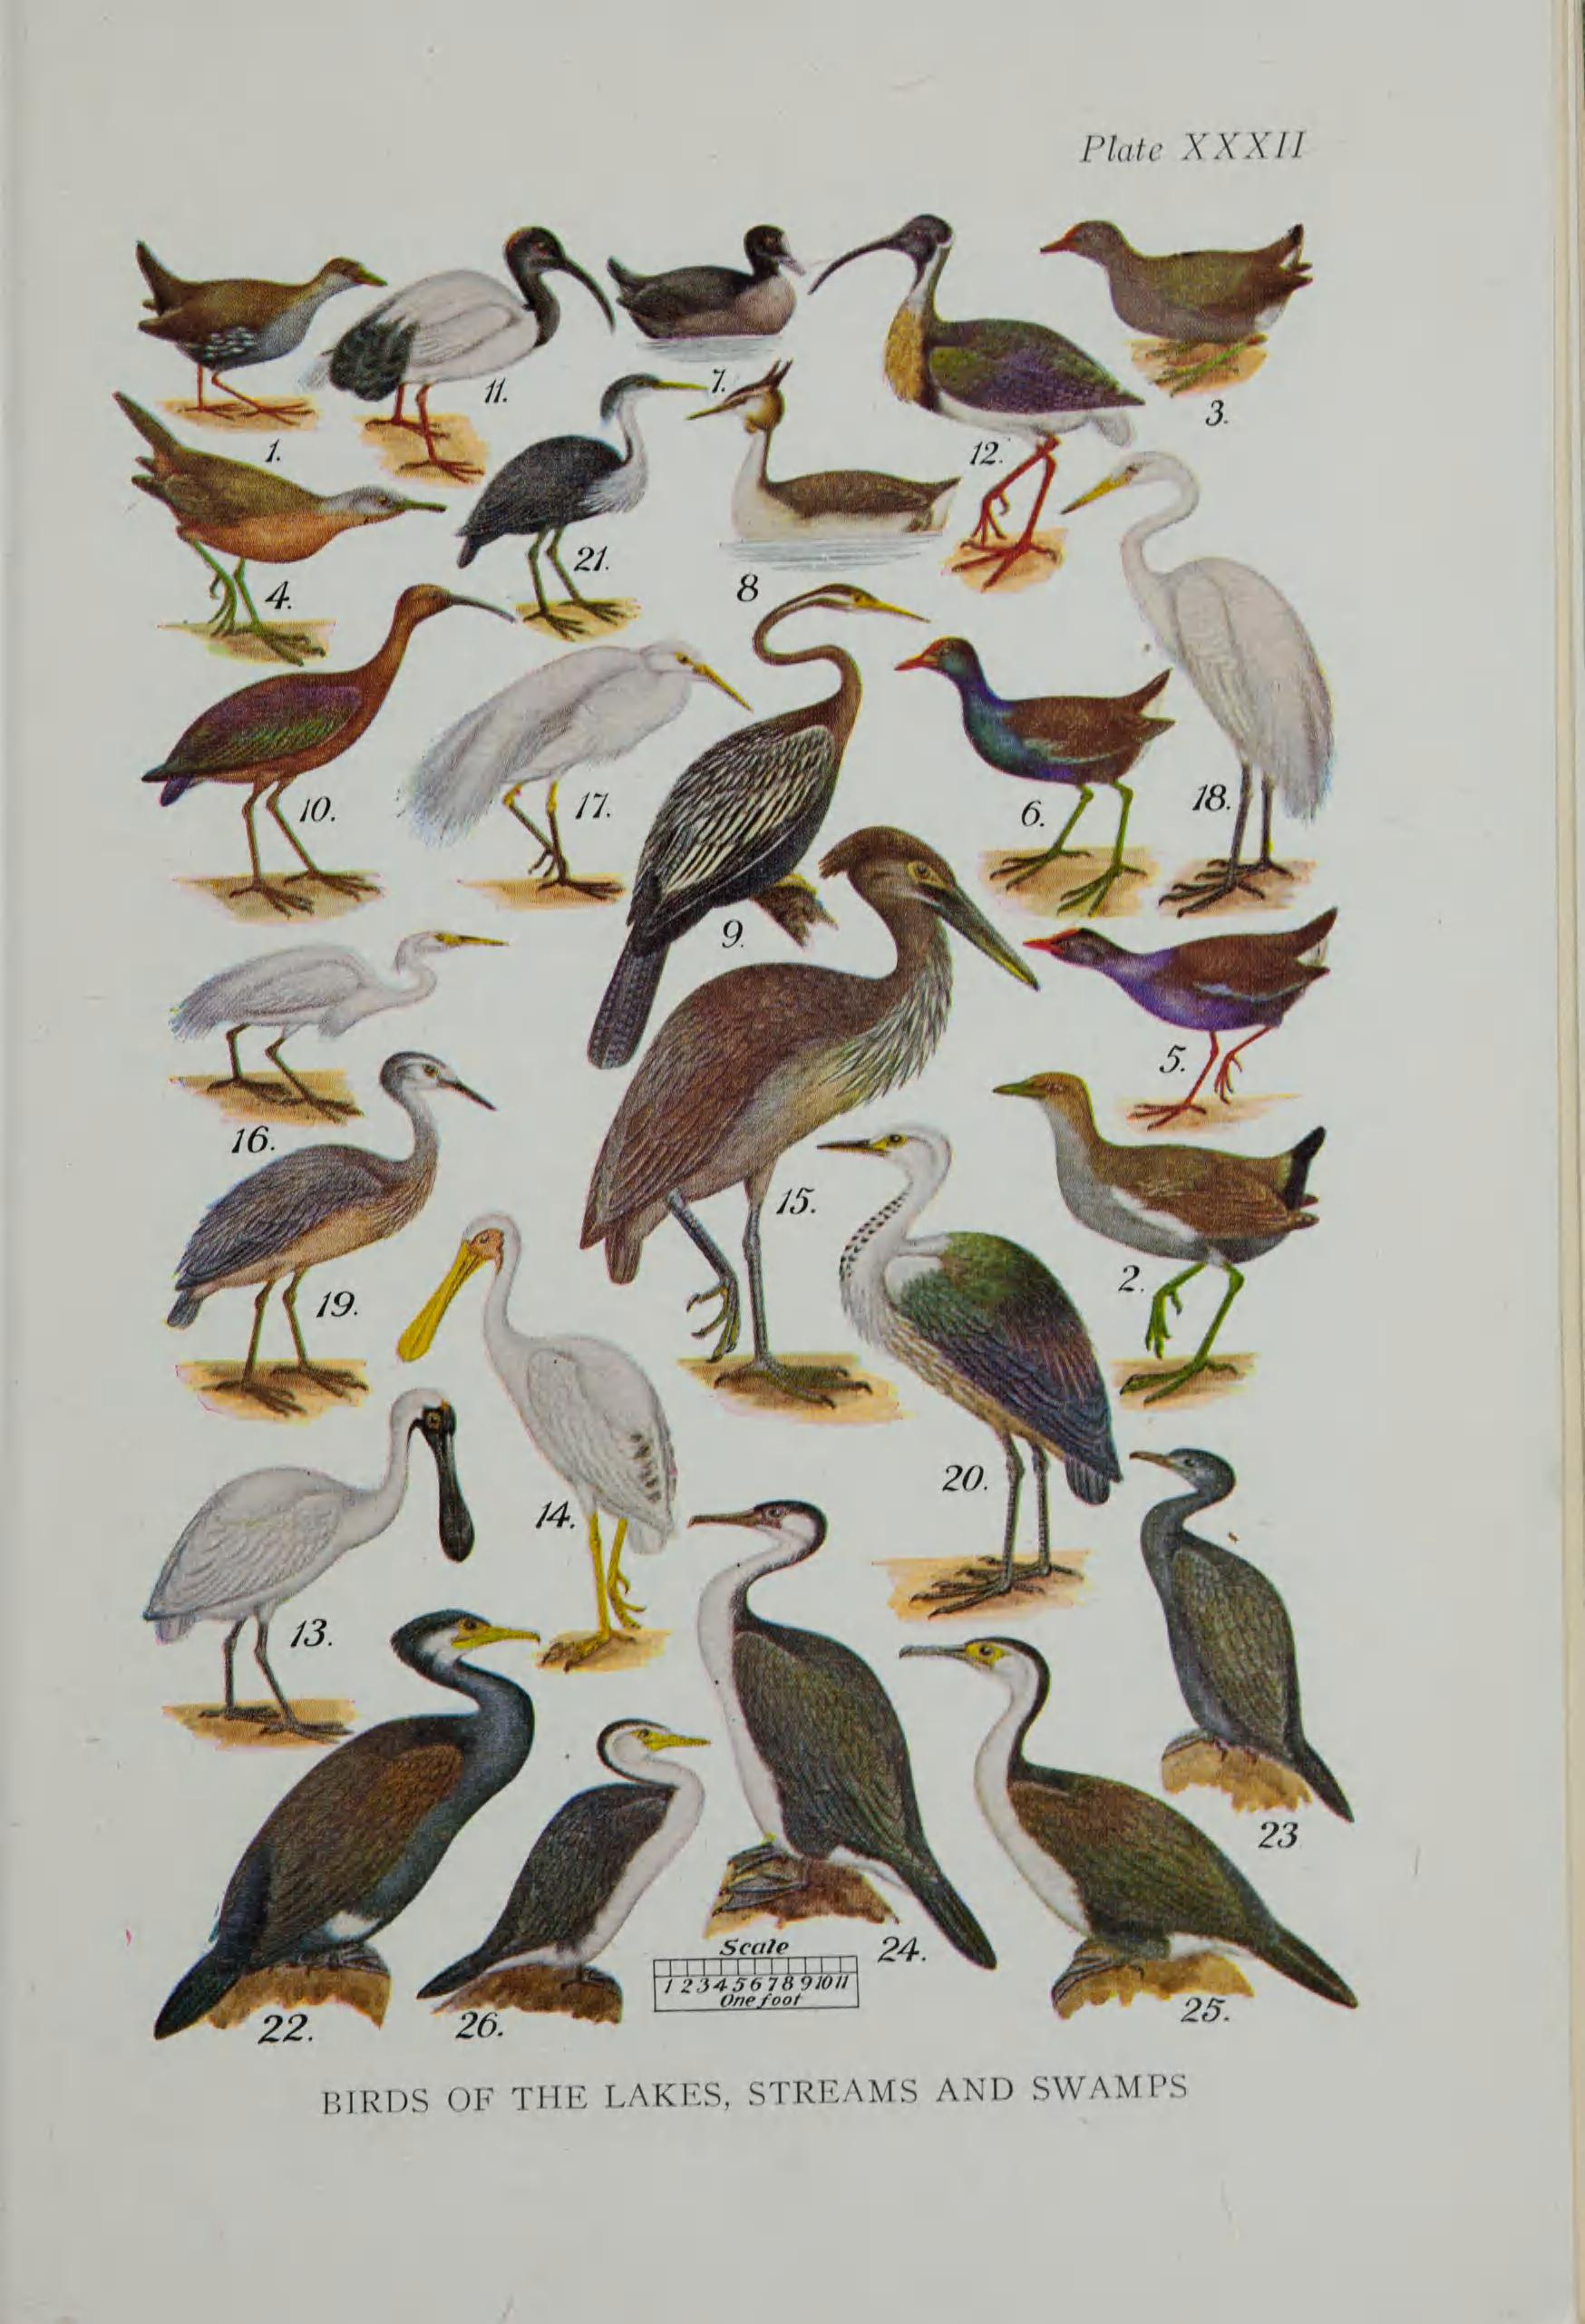 Collage of various birds illustrated in color.